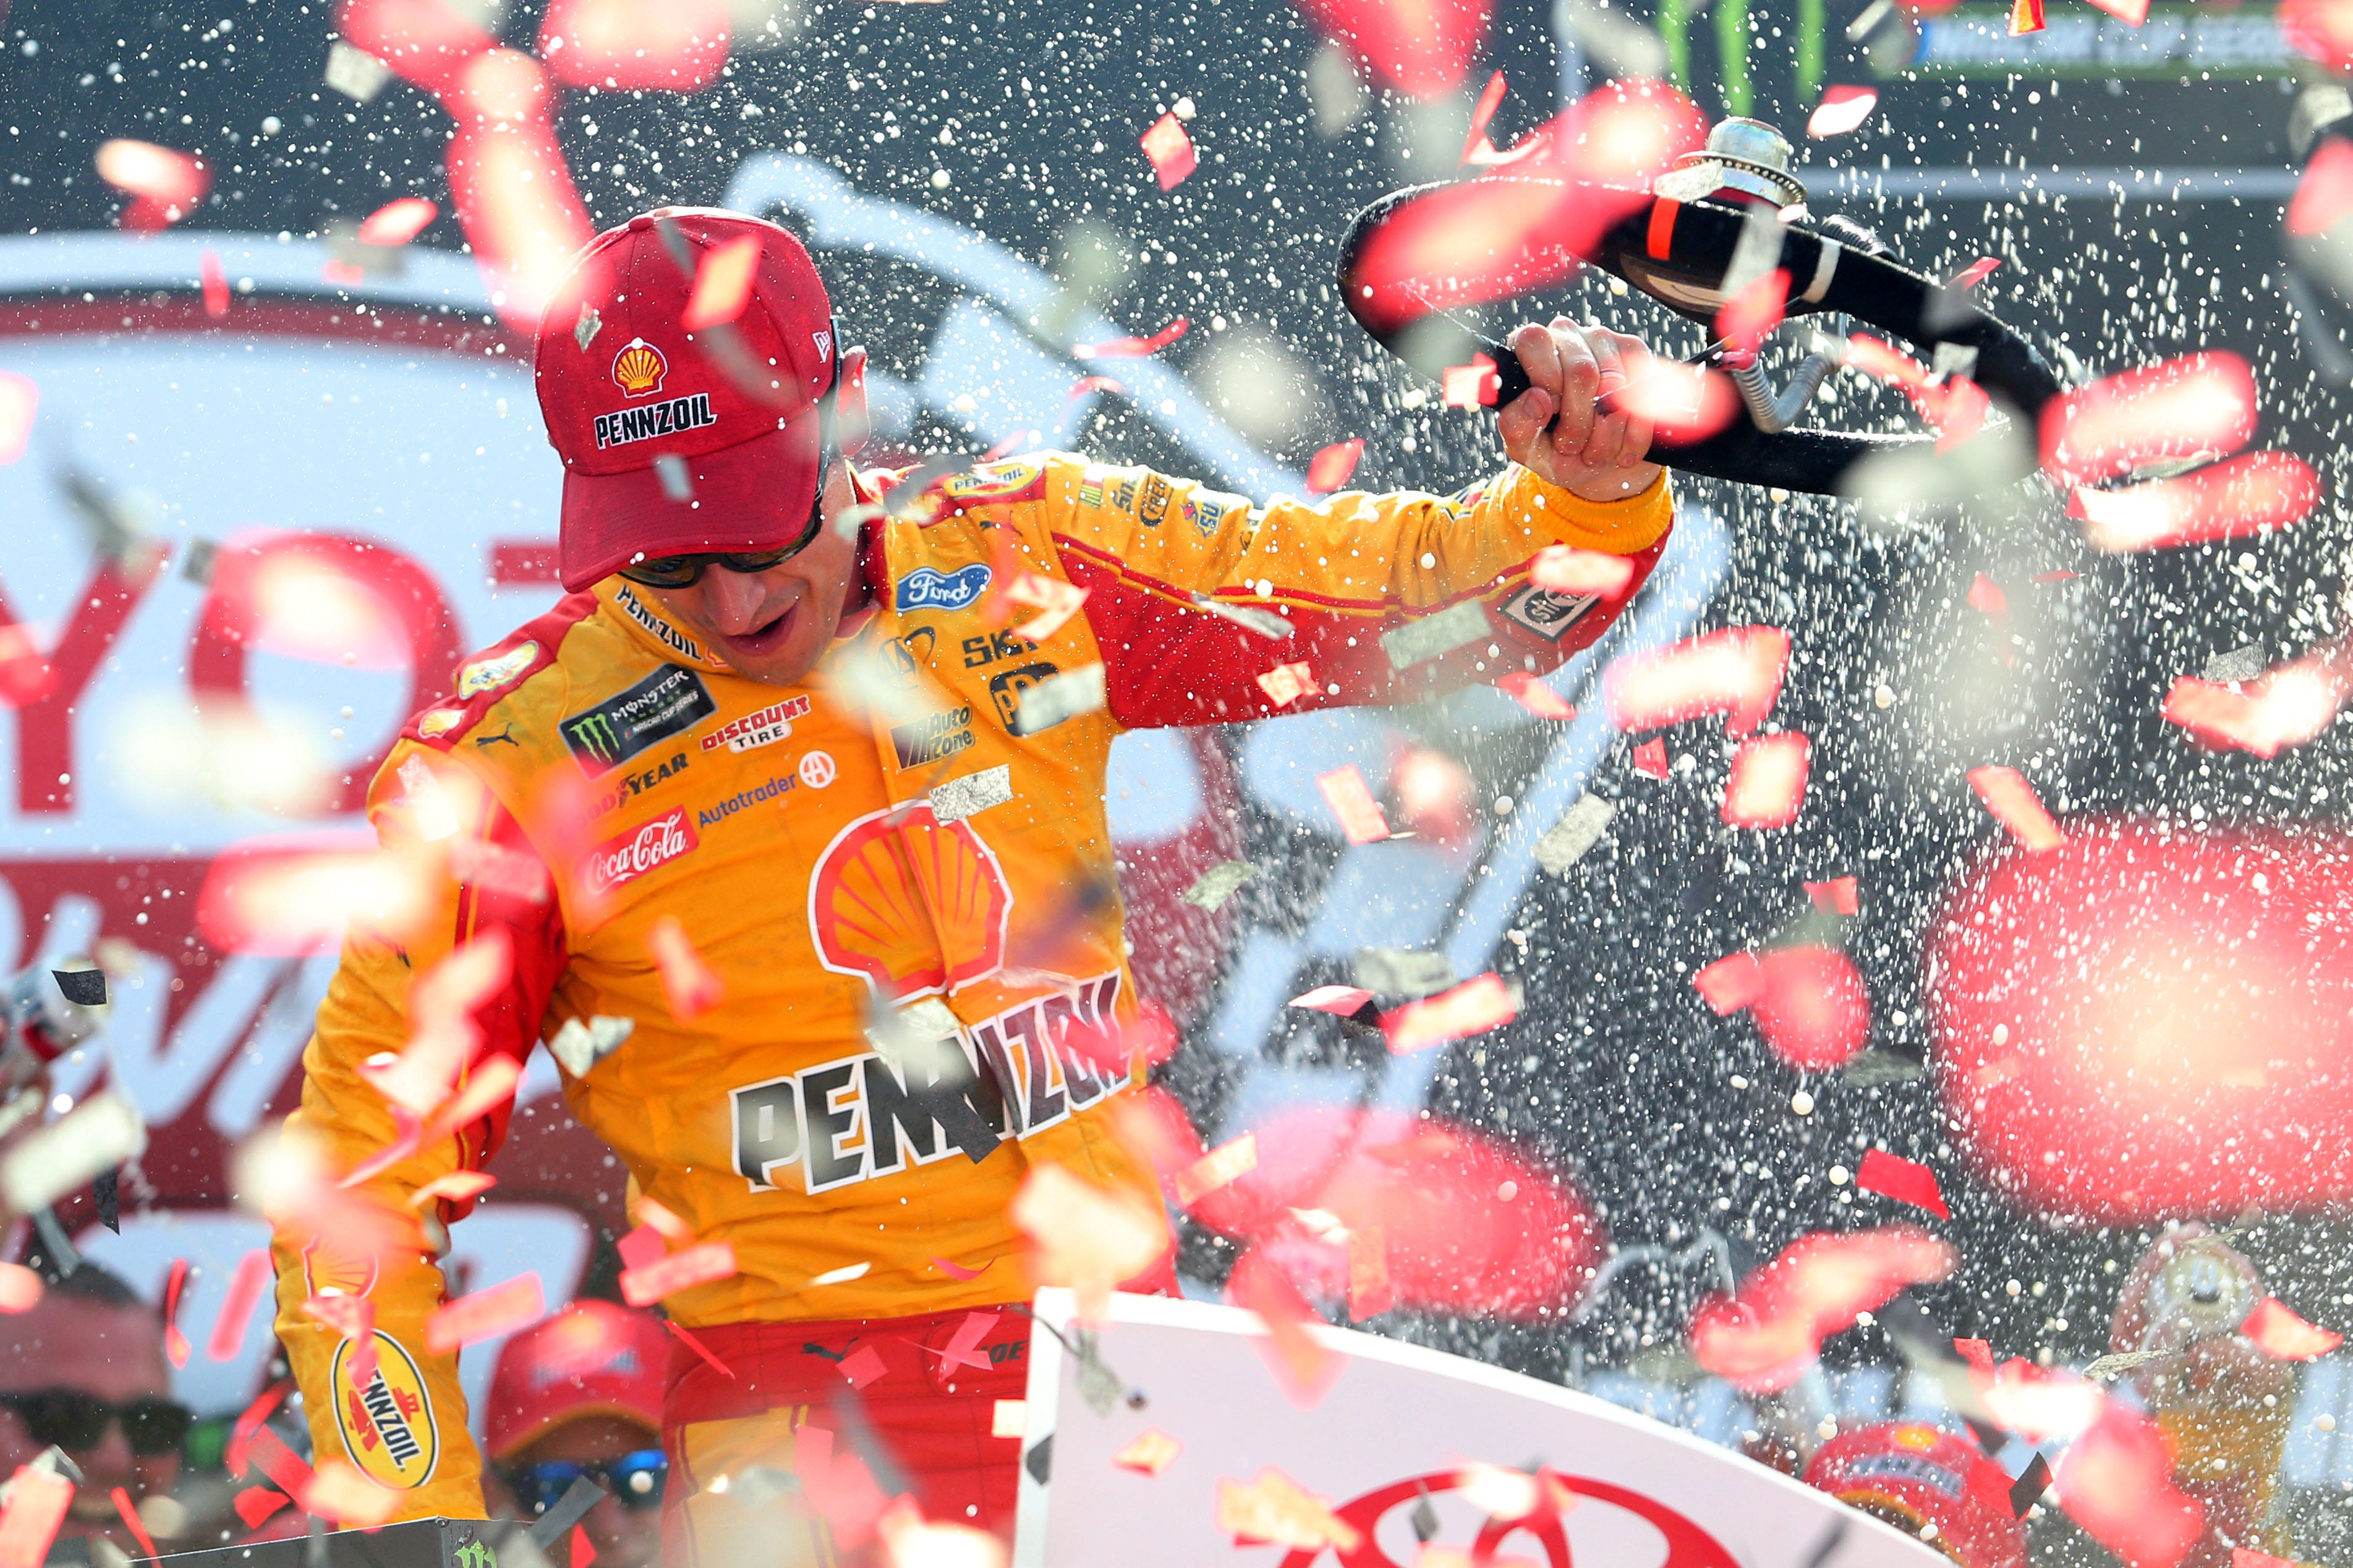 Joey Logano comes from the back to win at Richmond | FOX Sports